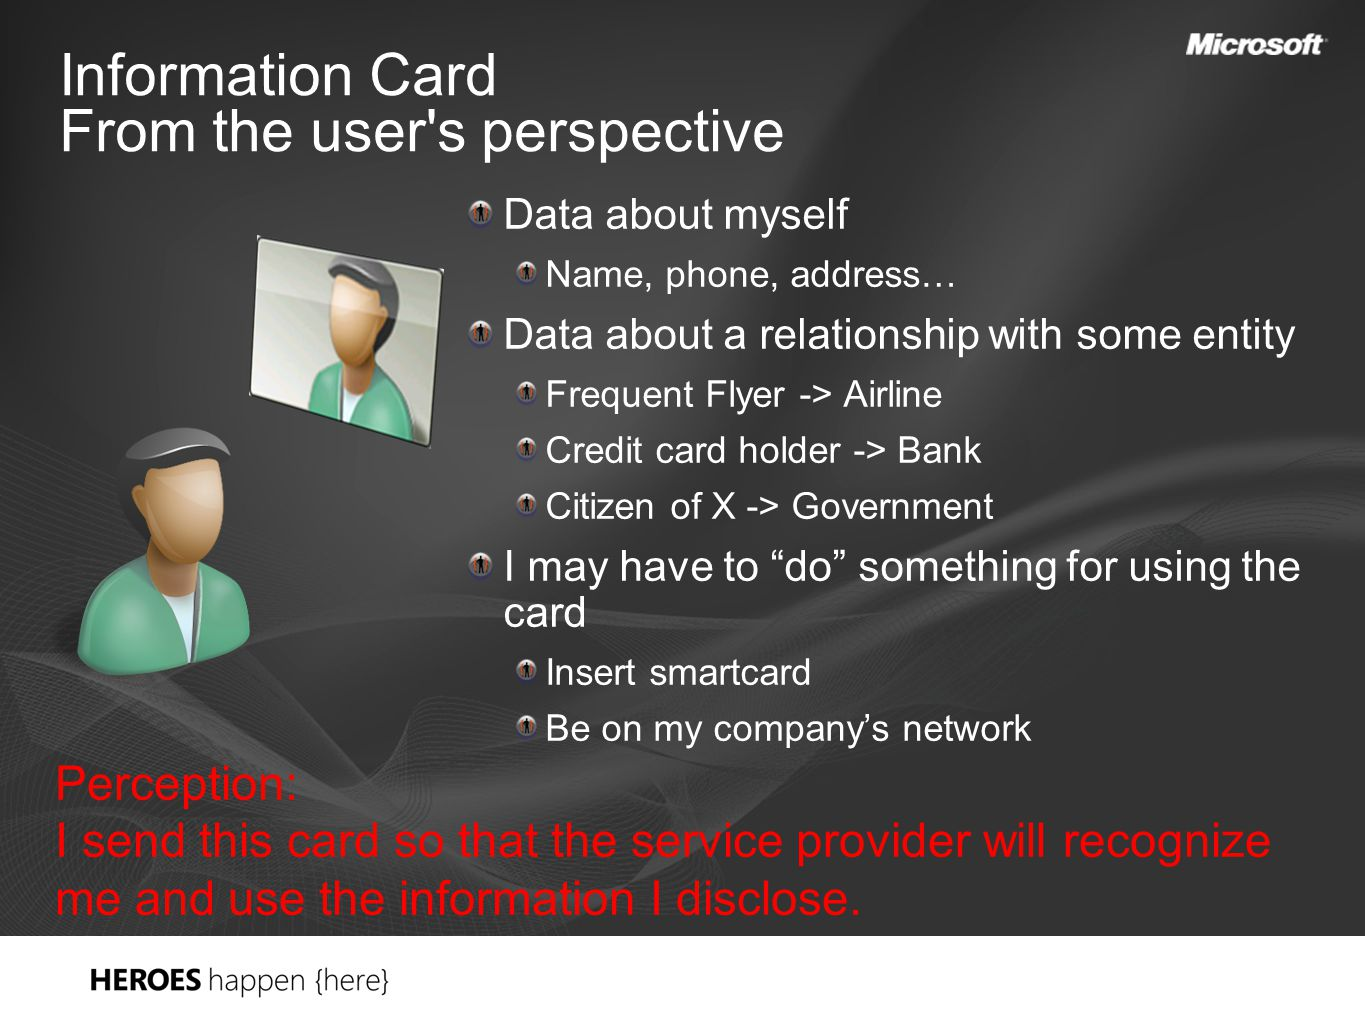 Information Card From the user s perspective Data about myself Name, phone, address… Data about a relationship with some entity Frequent Flyer -> Airline Credit card holder -> Bank Citizen of X -> Government I may have to do something for using the card Insert smartcard Be on my company's network Perception: I send this card so that the service provider will recognize me and use the information I disclose.